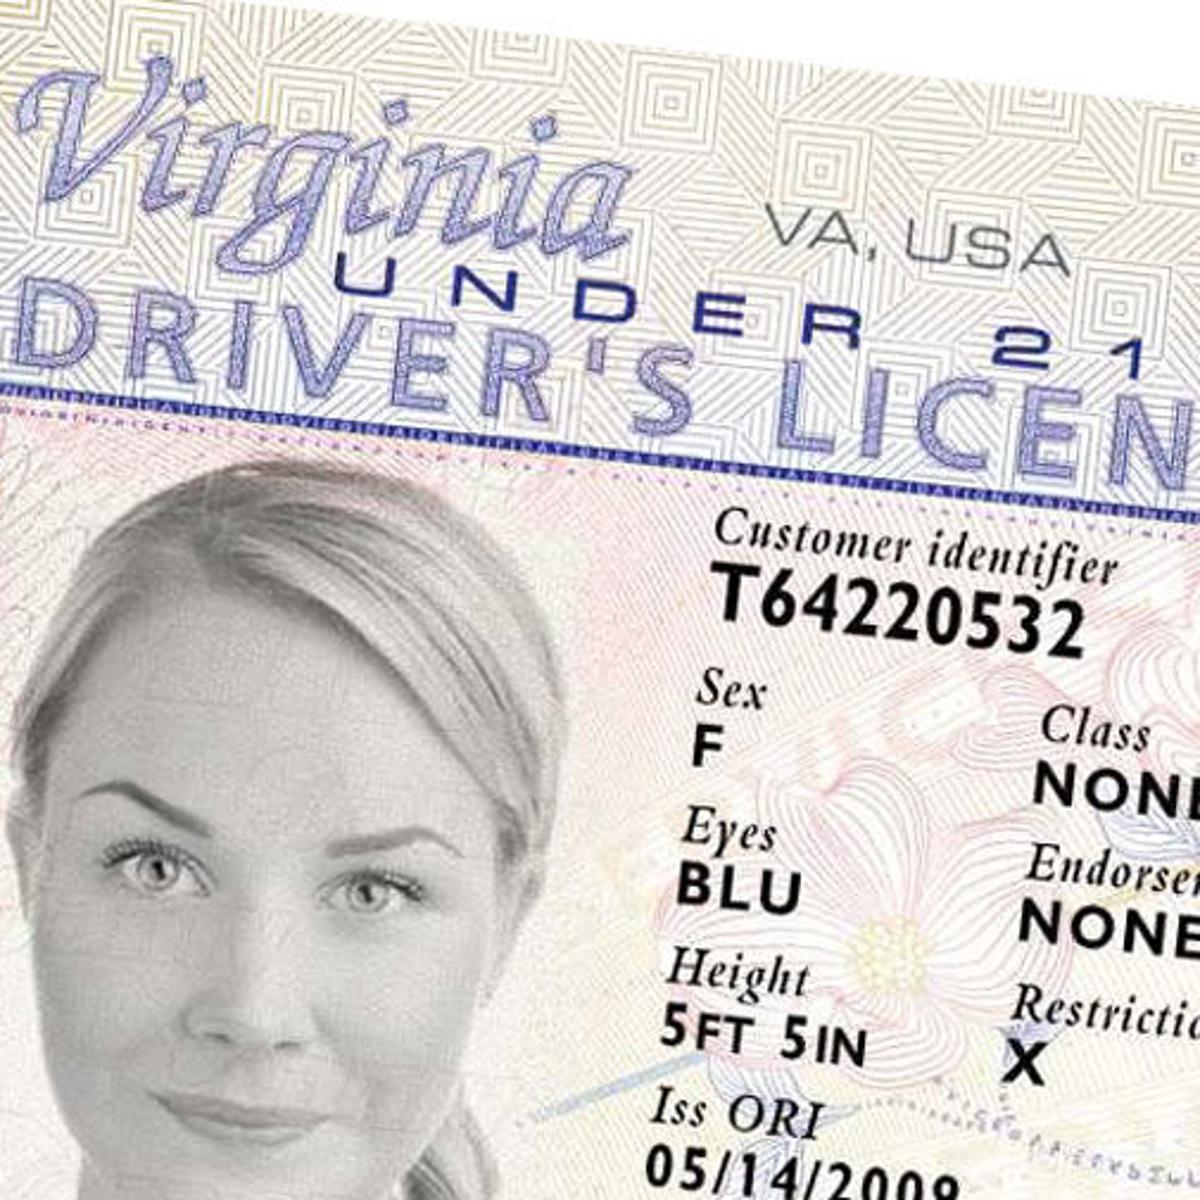 Judge blocks DMV from suspending licenses for failure to pay